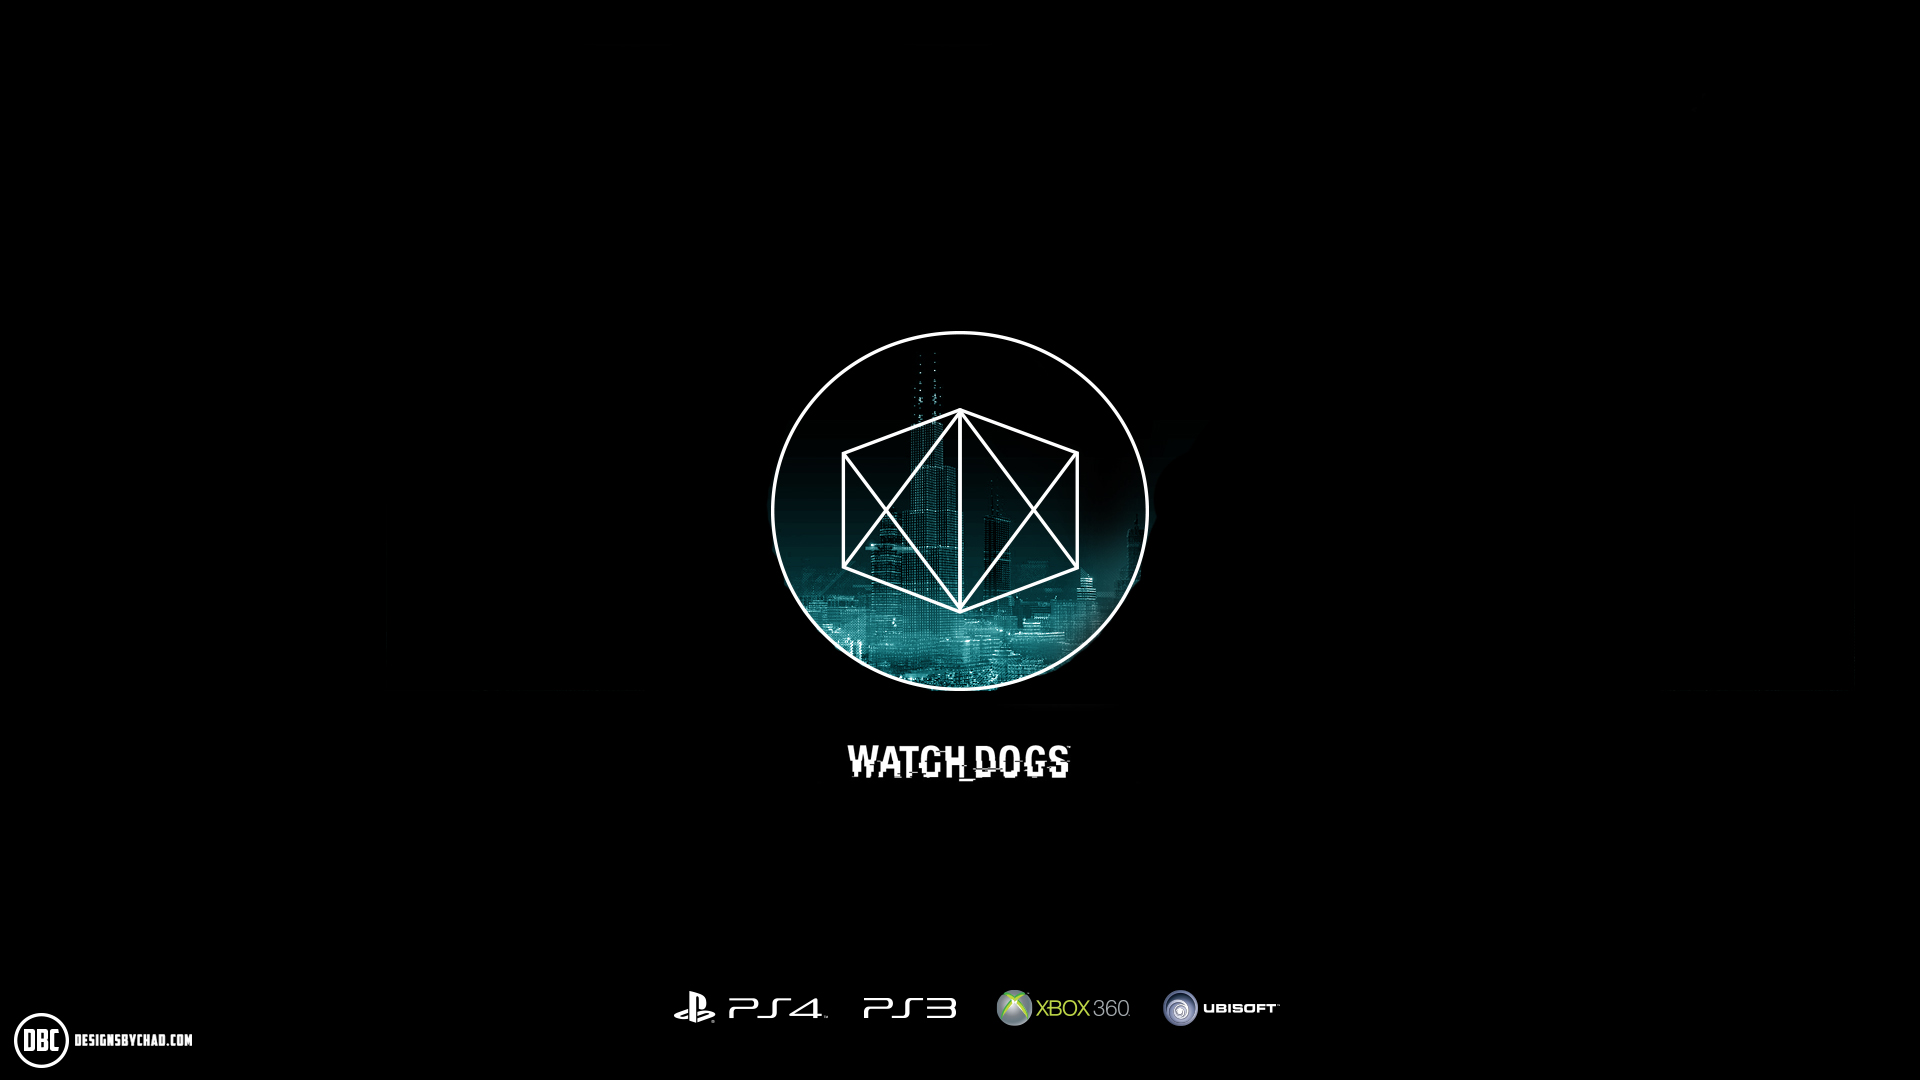 Free Download Watch Dogs Wallpaper By Chadski51 1920x1080 For